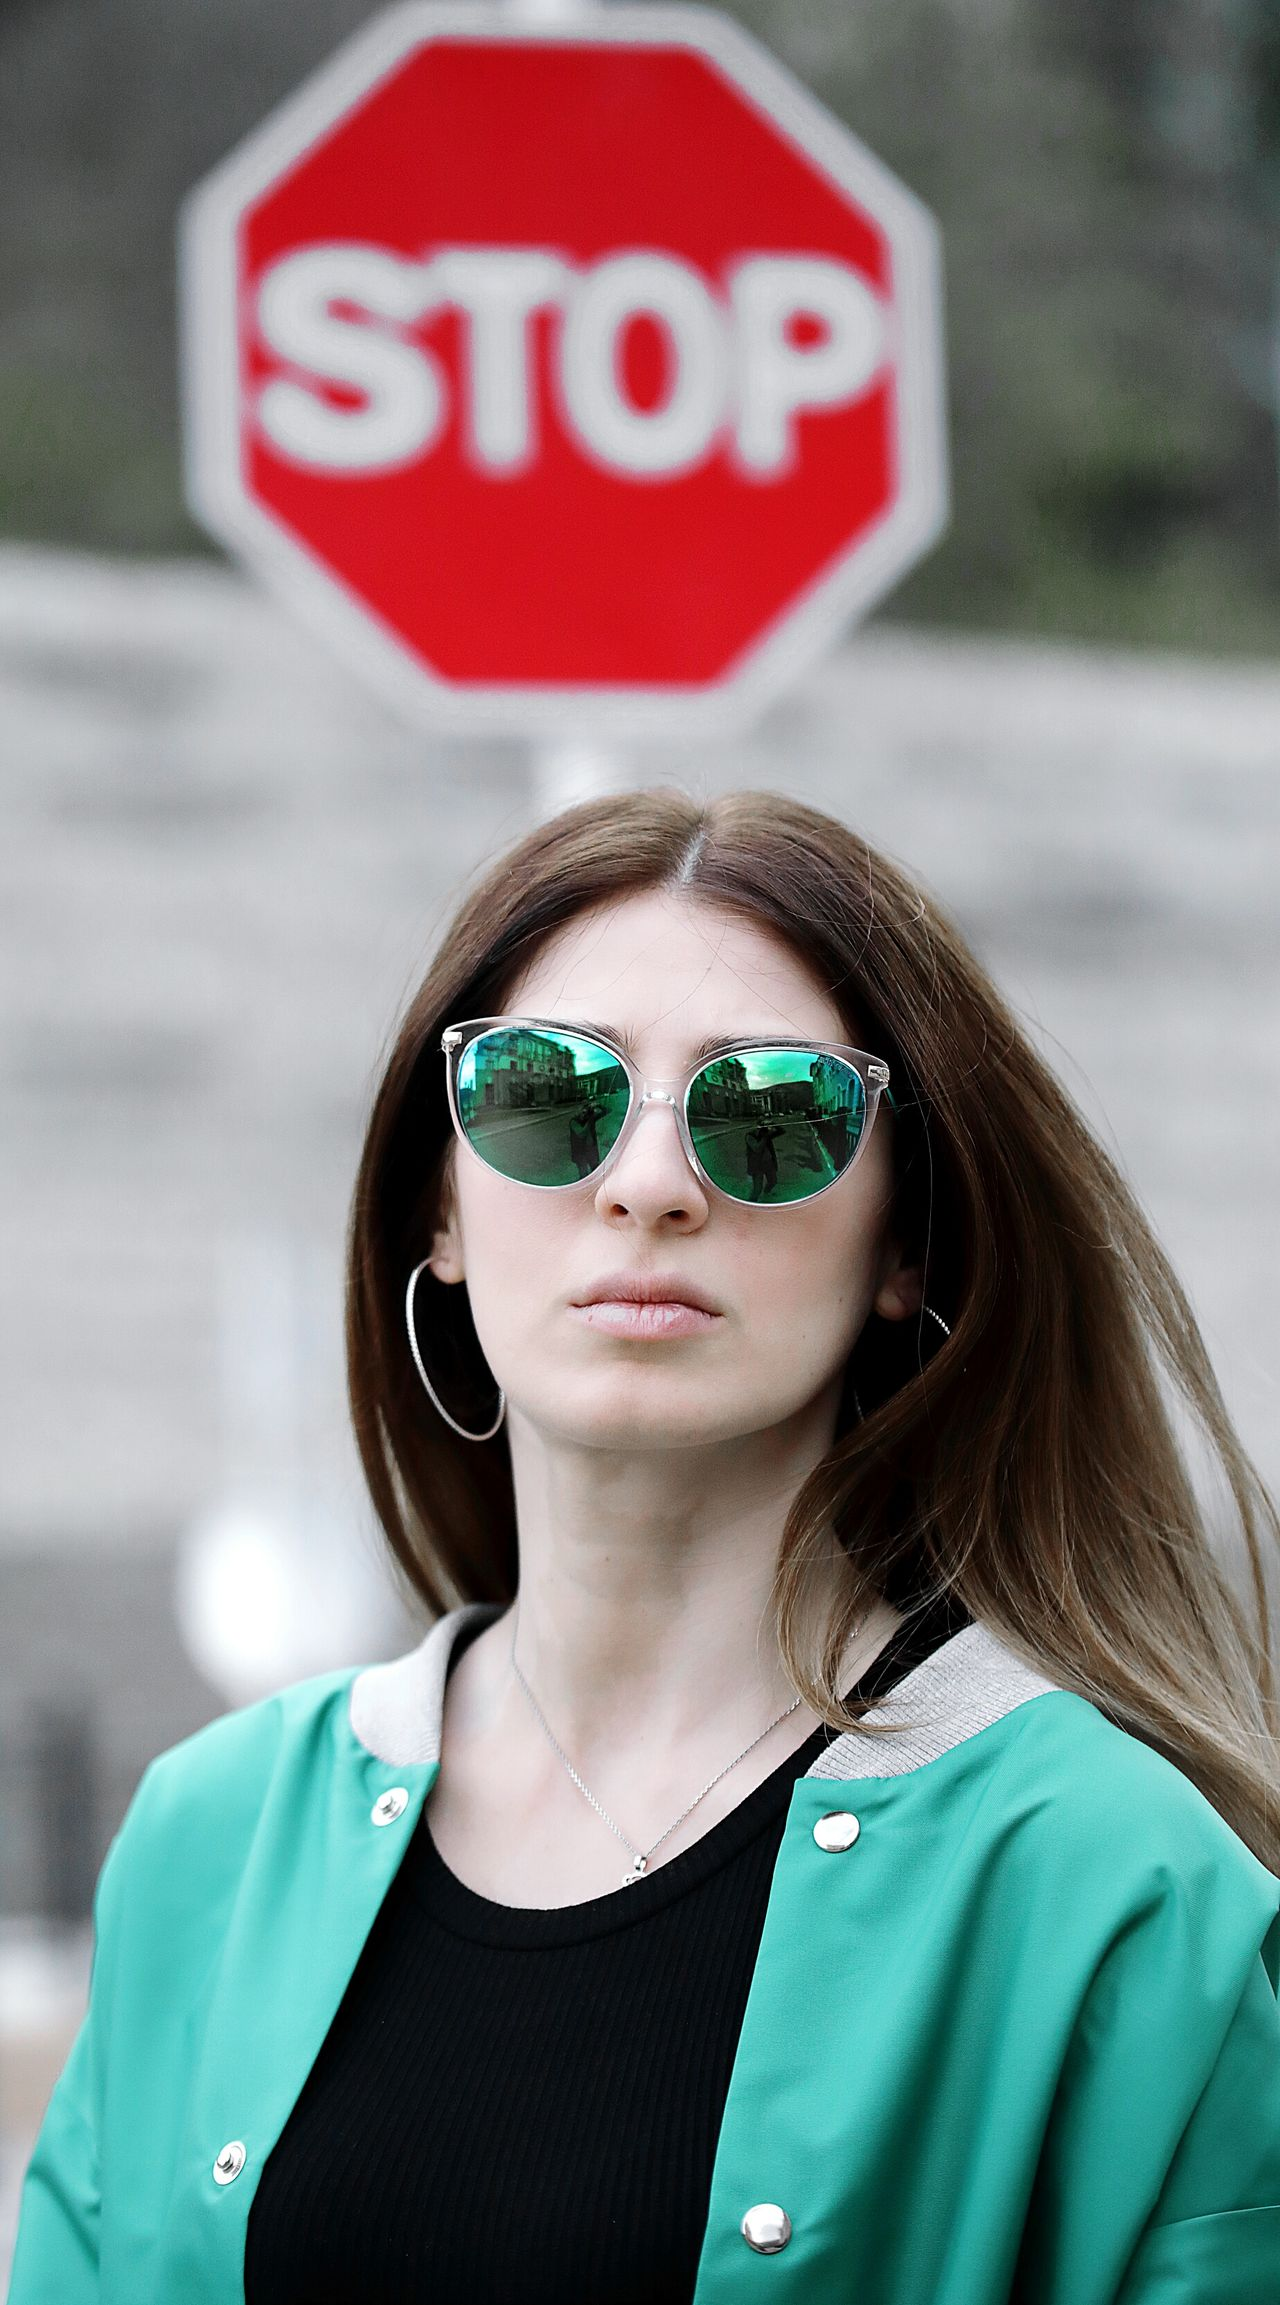 Streetphotography Street Photography Streetphoto Sunglasses One Woman Only Young Adult One Person Casual Clothing Portrait Only Women Young Women One Young Woman Only Green Color Women Outdoors Front View Day Krasnaya Polyana Gorkygorod Sochi Russia Stop Sign EyeEm Diversity The Street Photographer - 2017 EyeEm Awards The Portraitist - 2017 EyeEm Awards EyeEmNewHere EyeEmNewHere BYOPaper! The Portraitist - 2017 EyeEm Awards